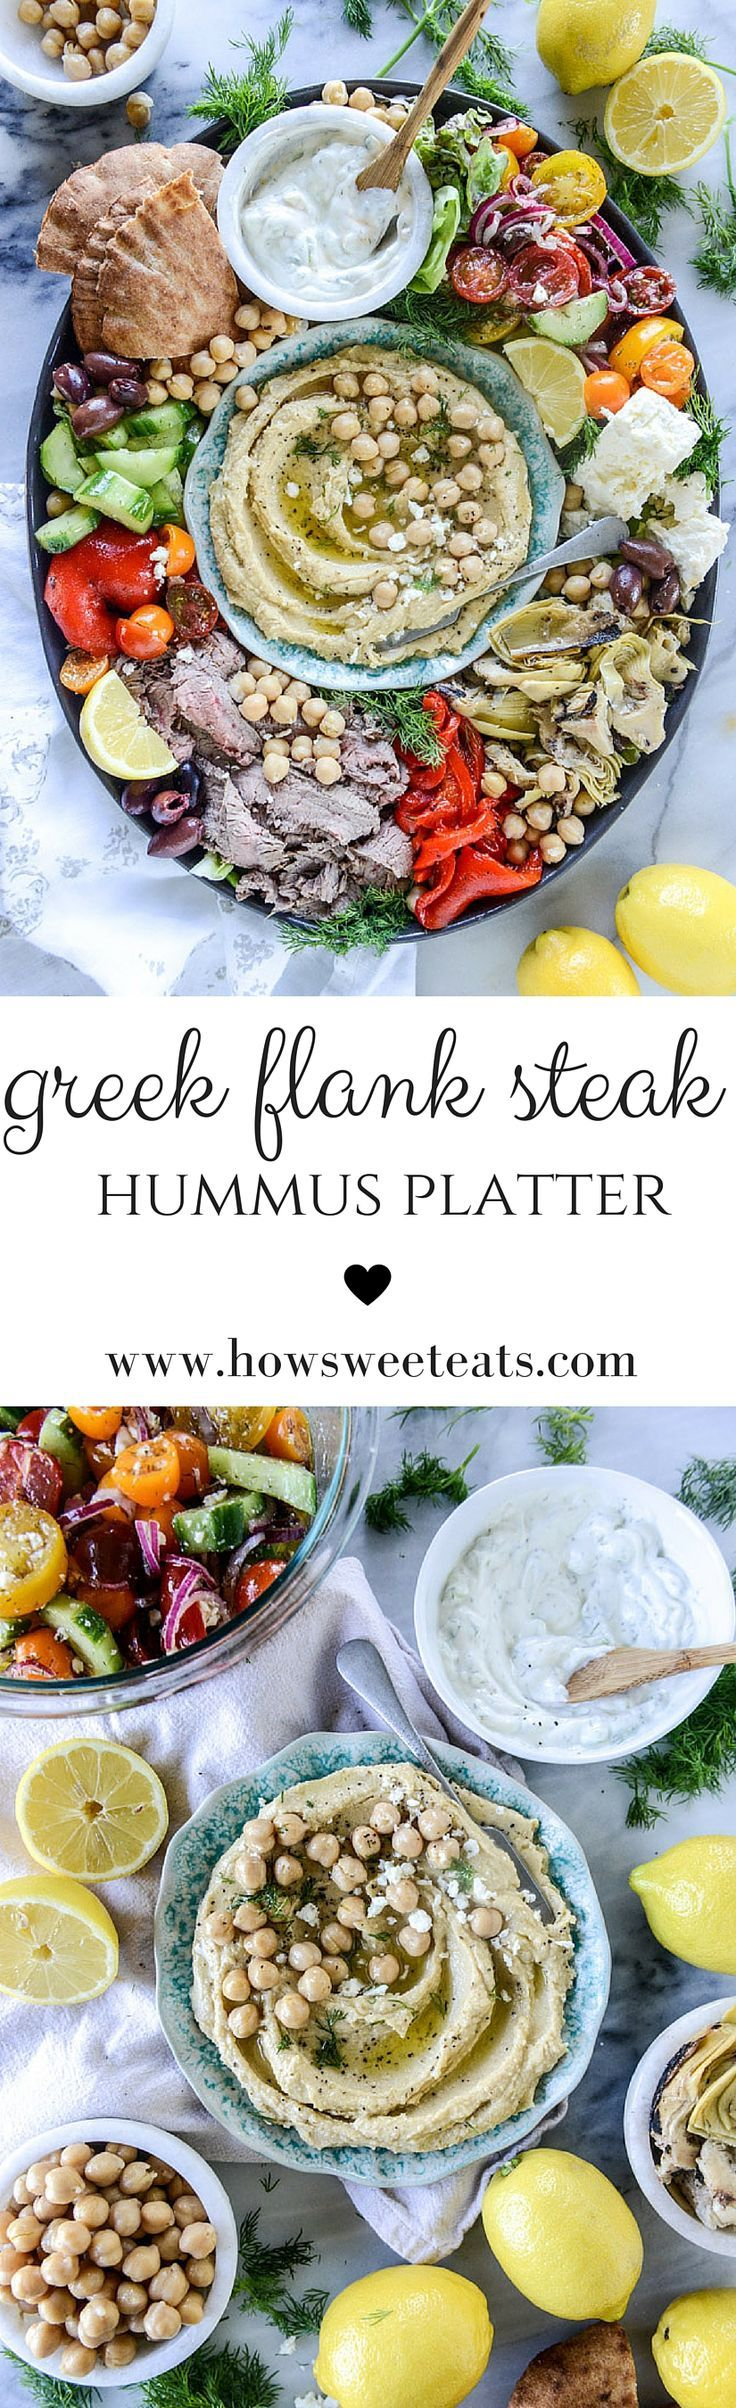 marinated greek flank steak hummus platter by /howsweeteats/ I http://howsweeteats.com